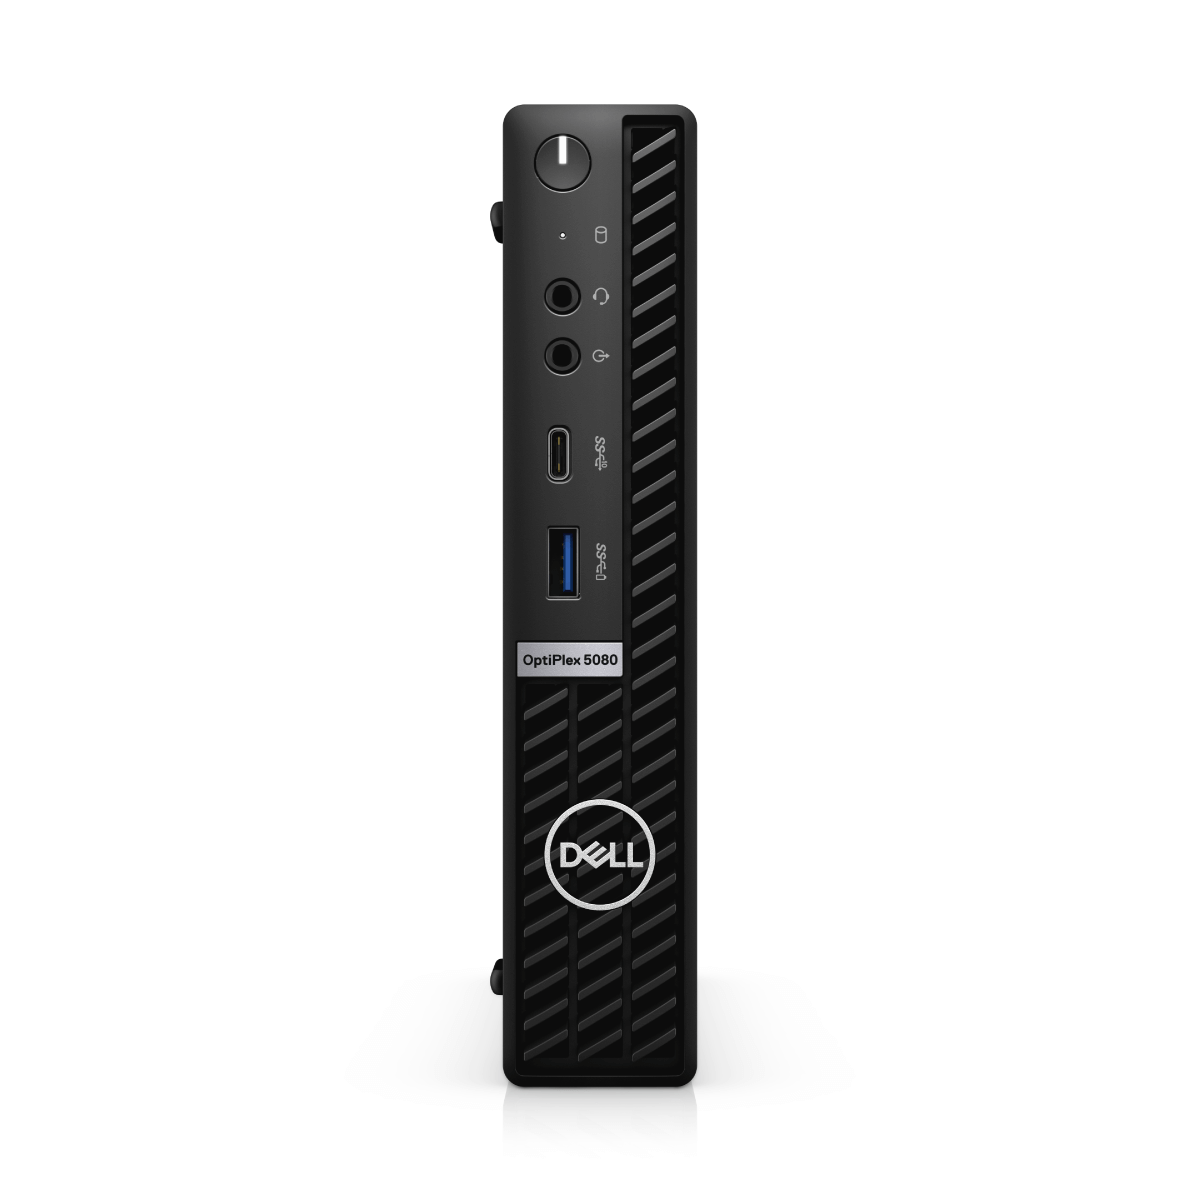 Dell OptiPlex 5080 Micro (i7, Black)